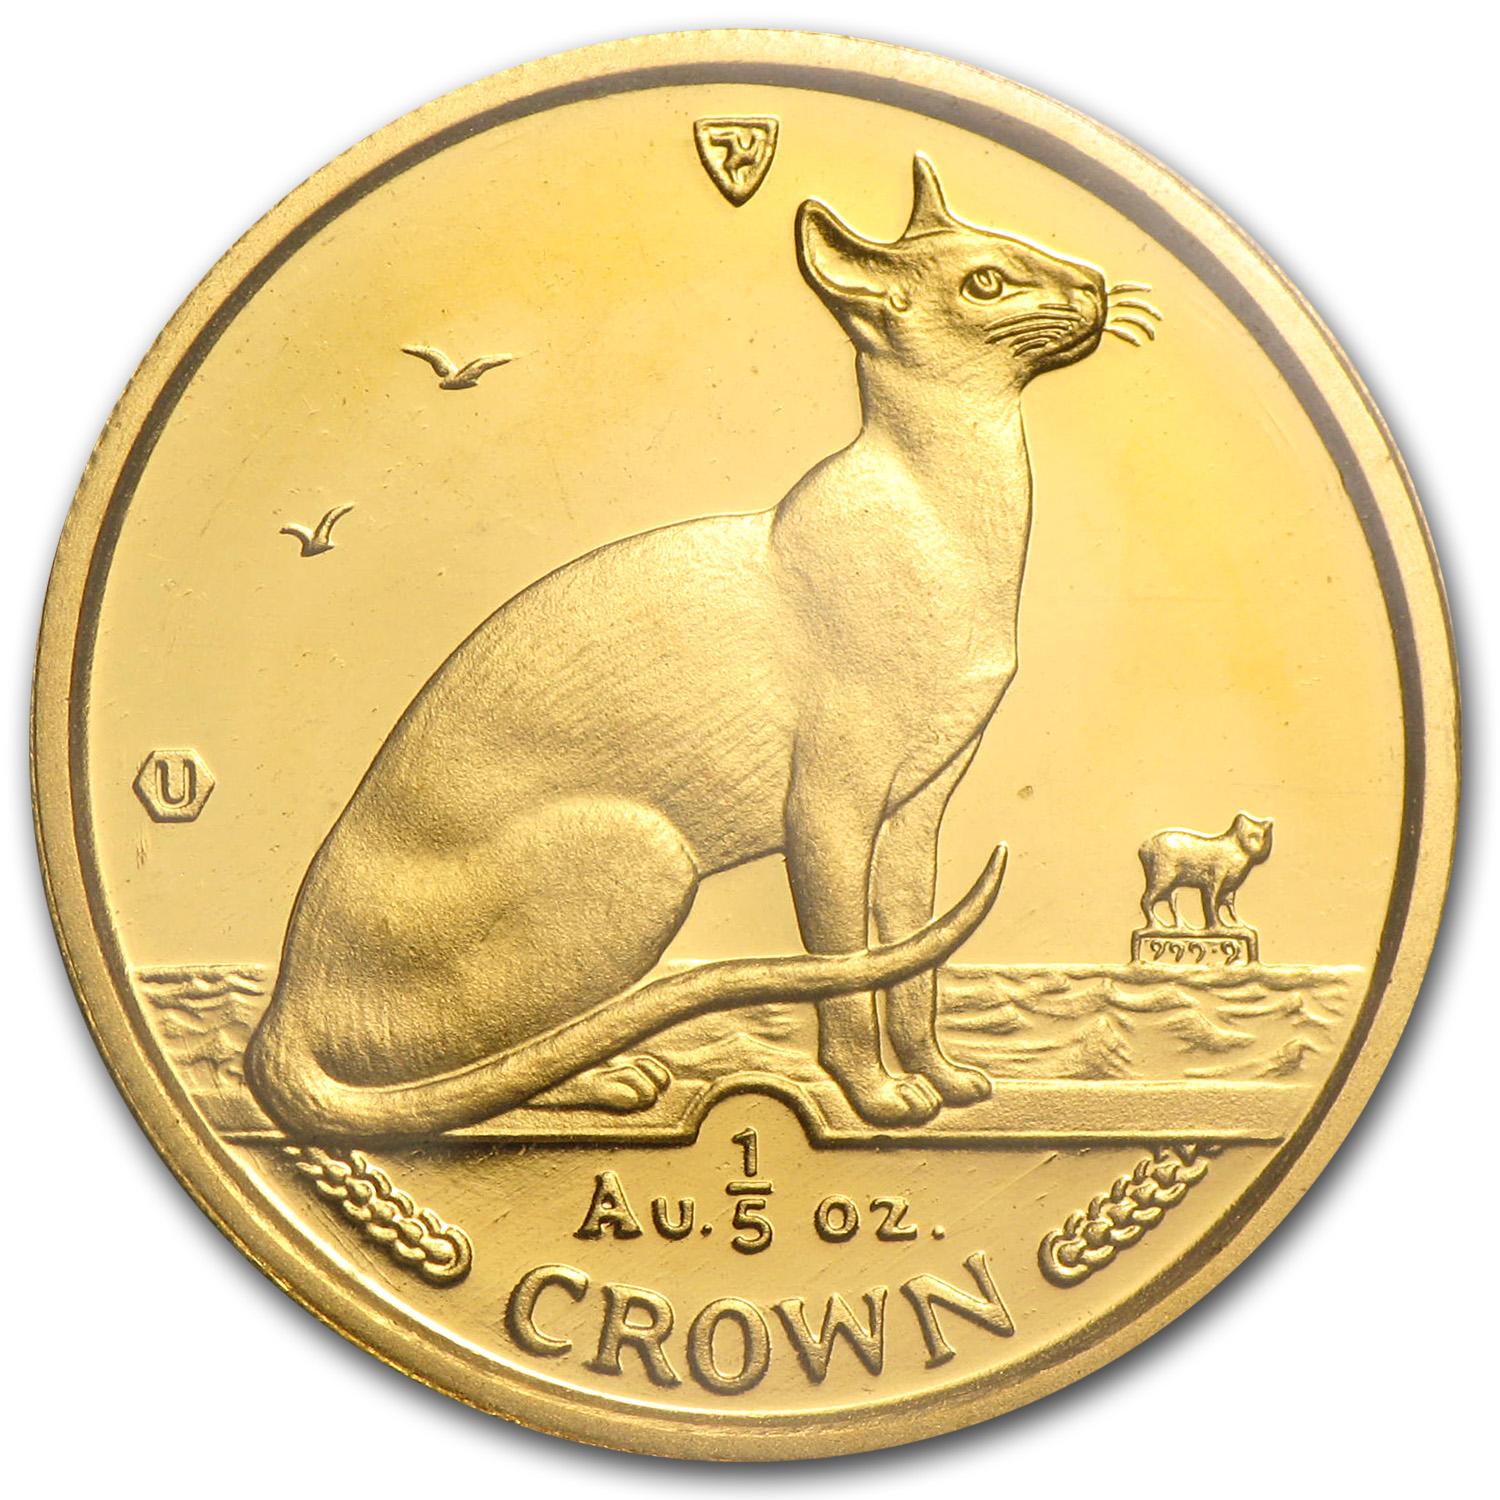 1992 Isle of Man 1/5 Crown Gold Siamese Cat